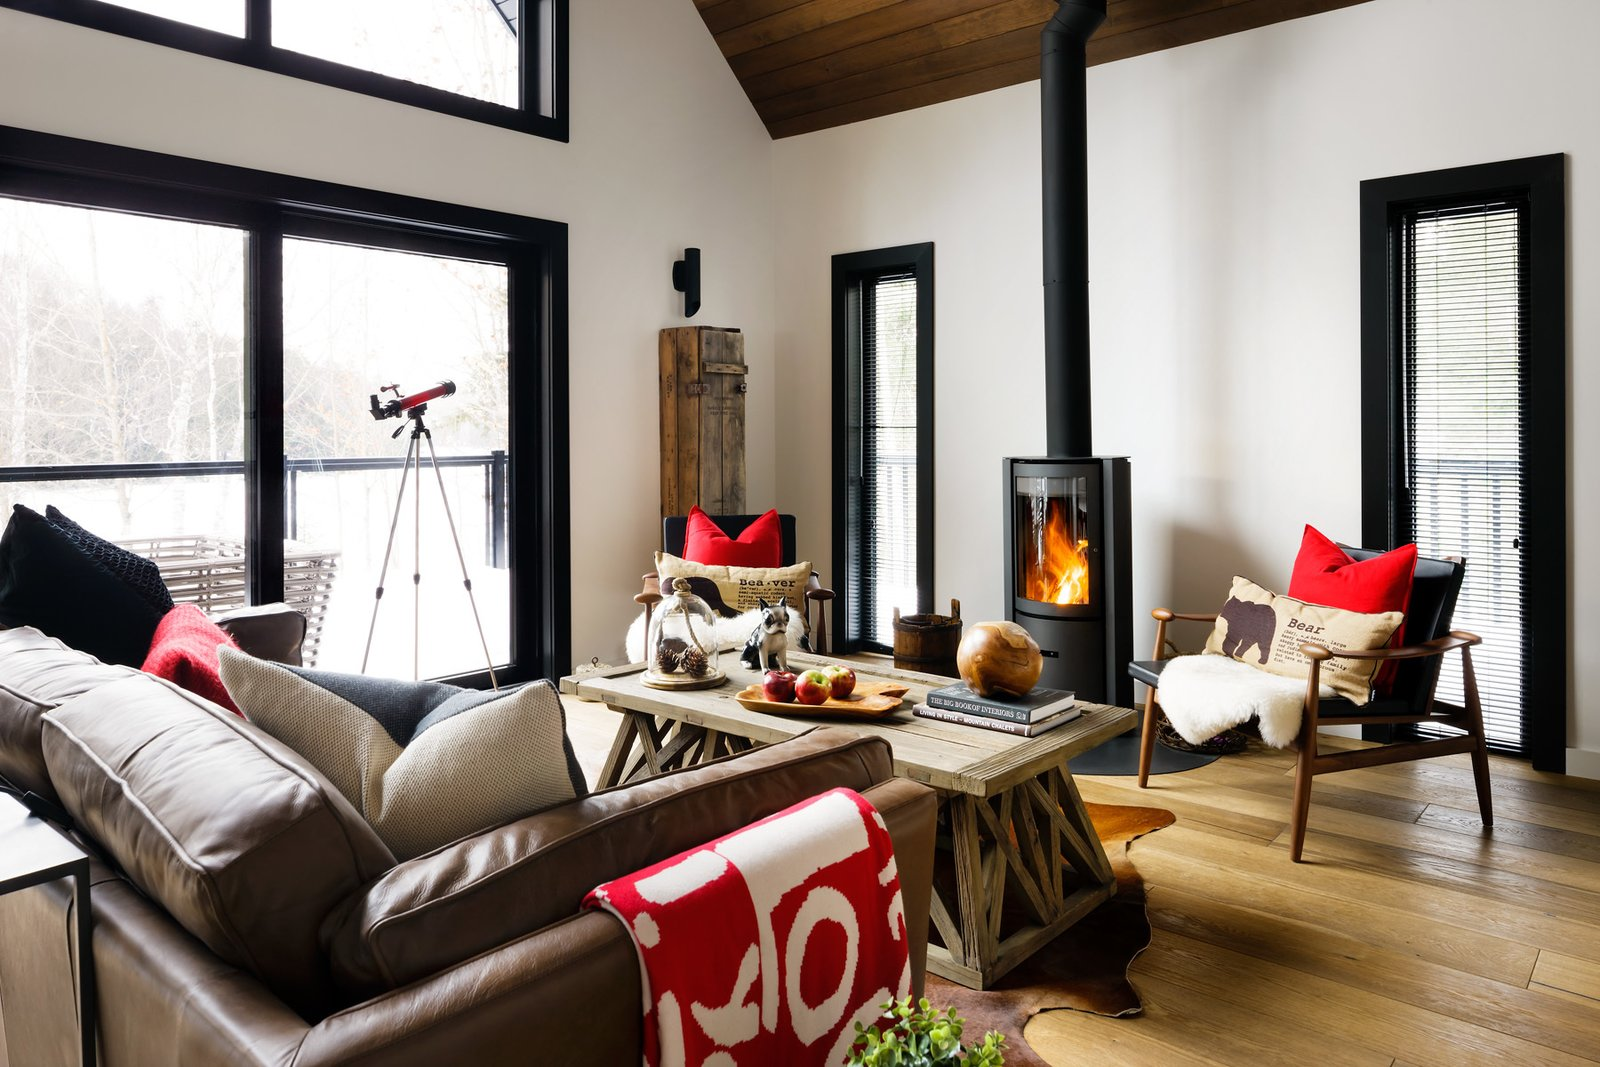 Before & After: Interior Designers Colin McAllister and Justin Ryan Spruce Up Their Canadian Cottage